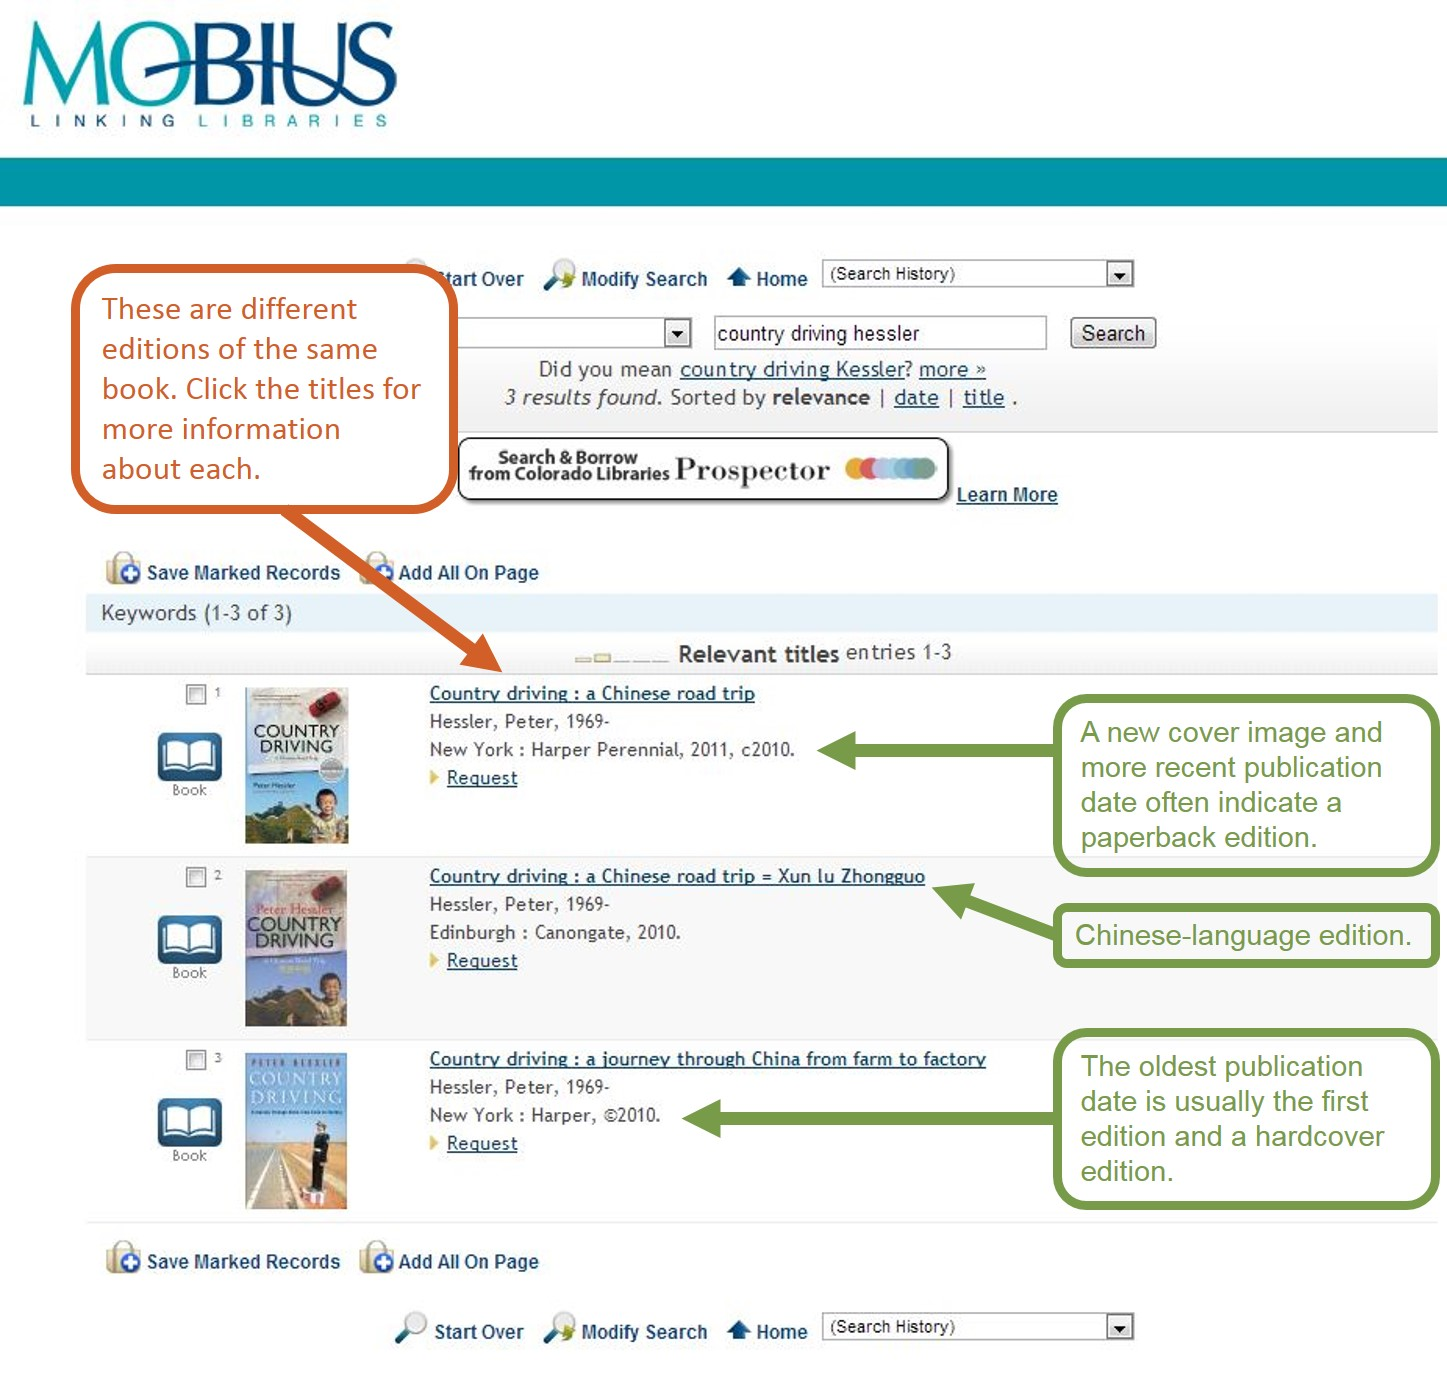 An image showing the search results page for MOBIUS, with arrows indicating the paperback and hardcover editions.